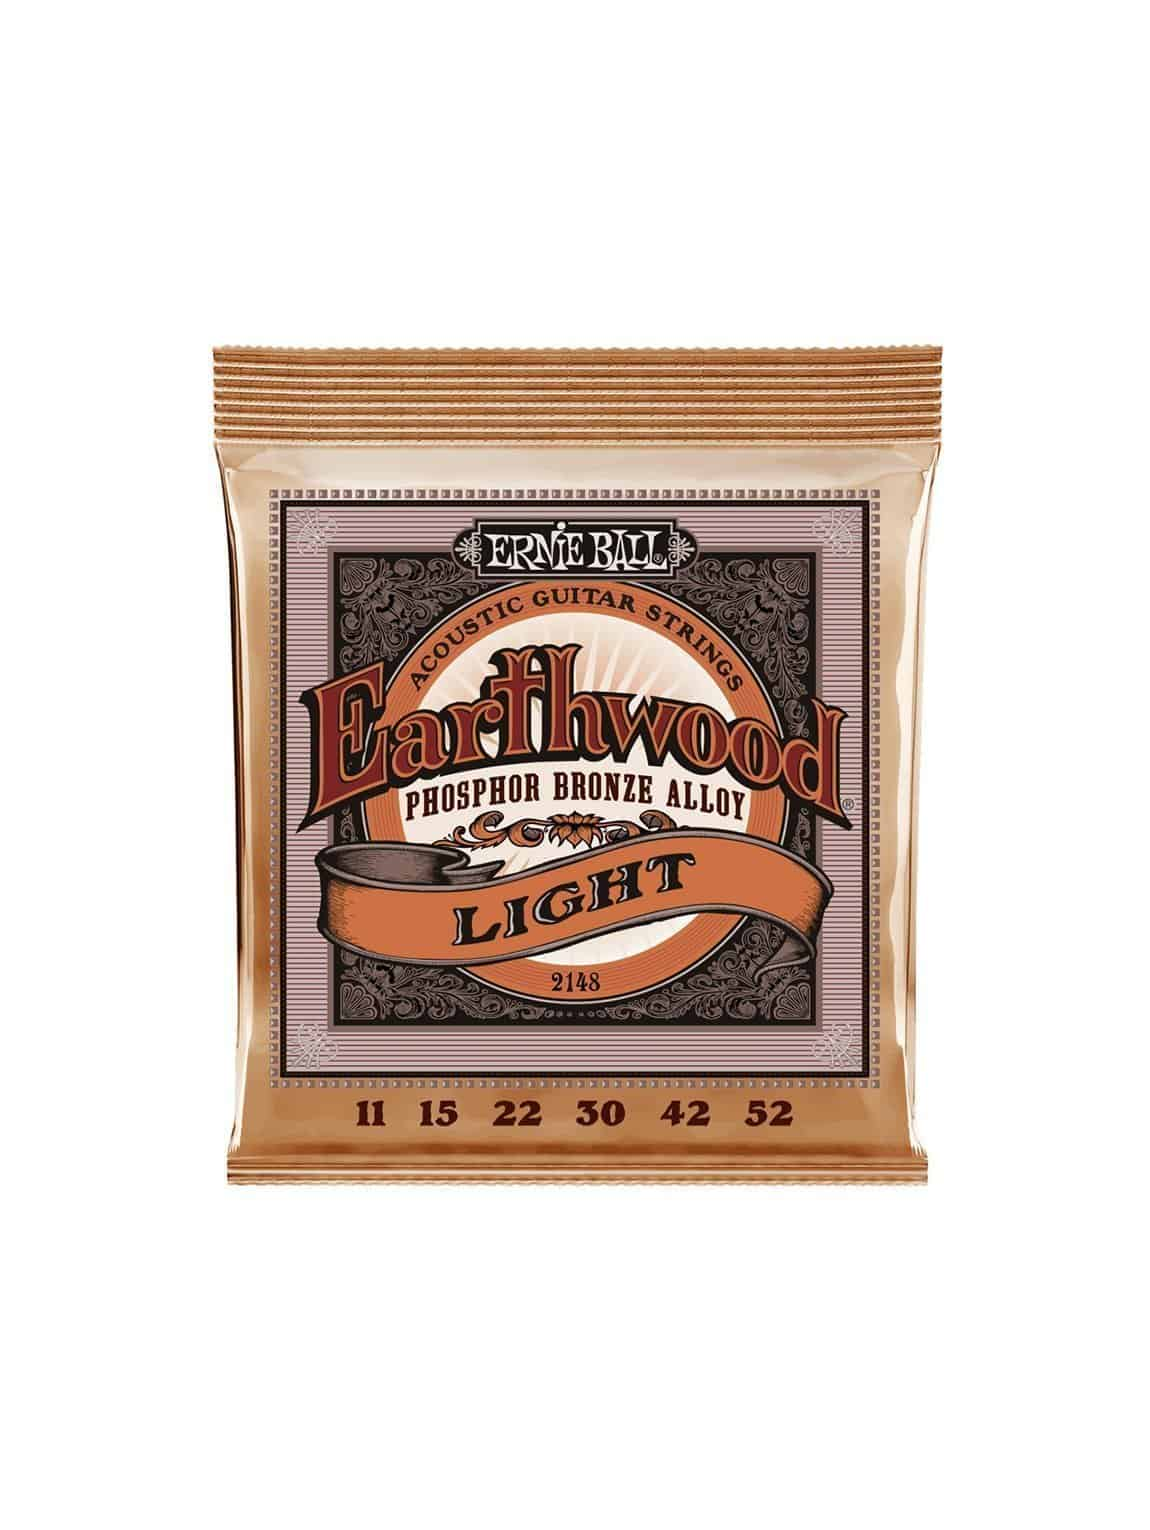 Ernie Ball - Acoustic Light 11-52 [2148]